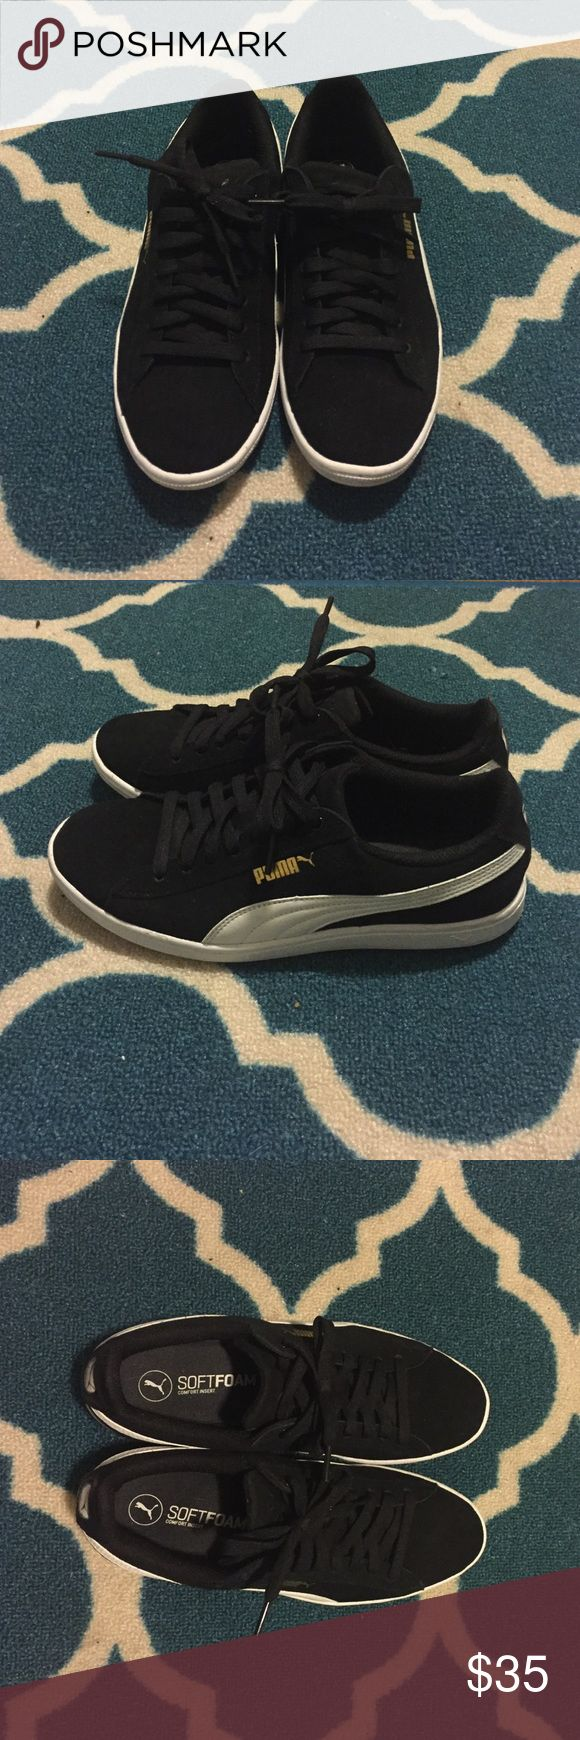 Puma classic suede sneaker. Puma brand classic suede sneaker. Women's size 8.5. Only worn a few times. Puma Shoes Sneakers